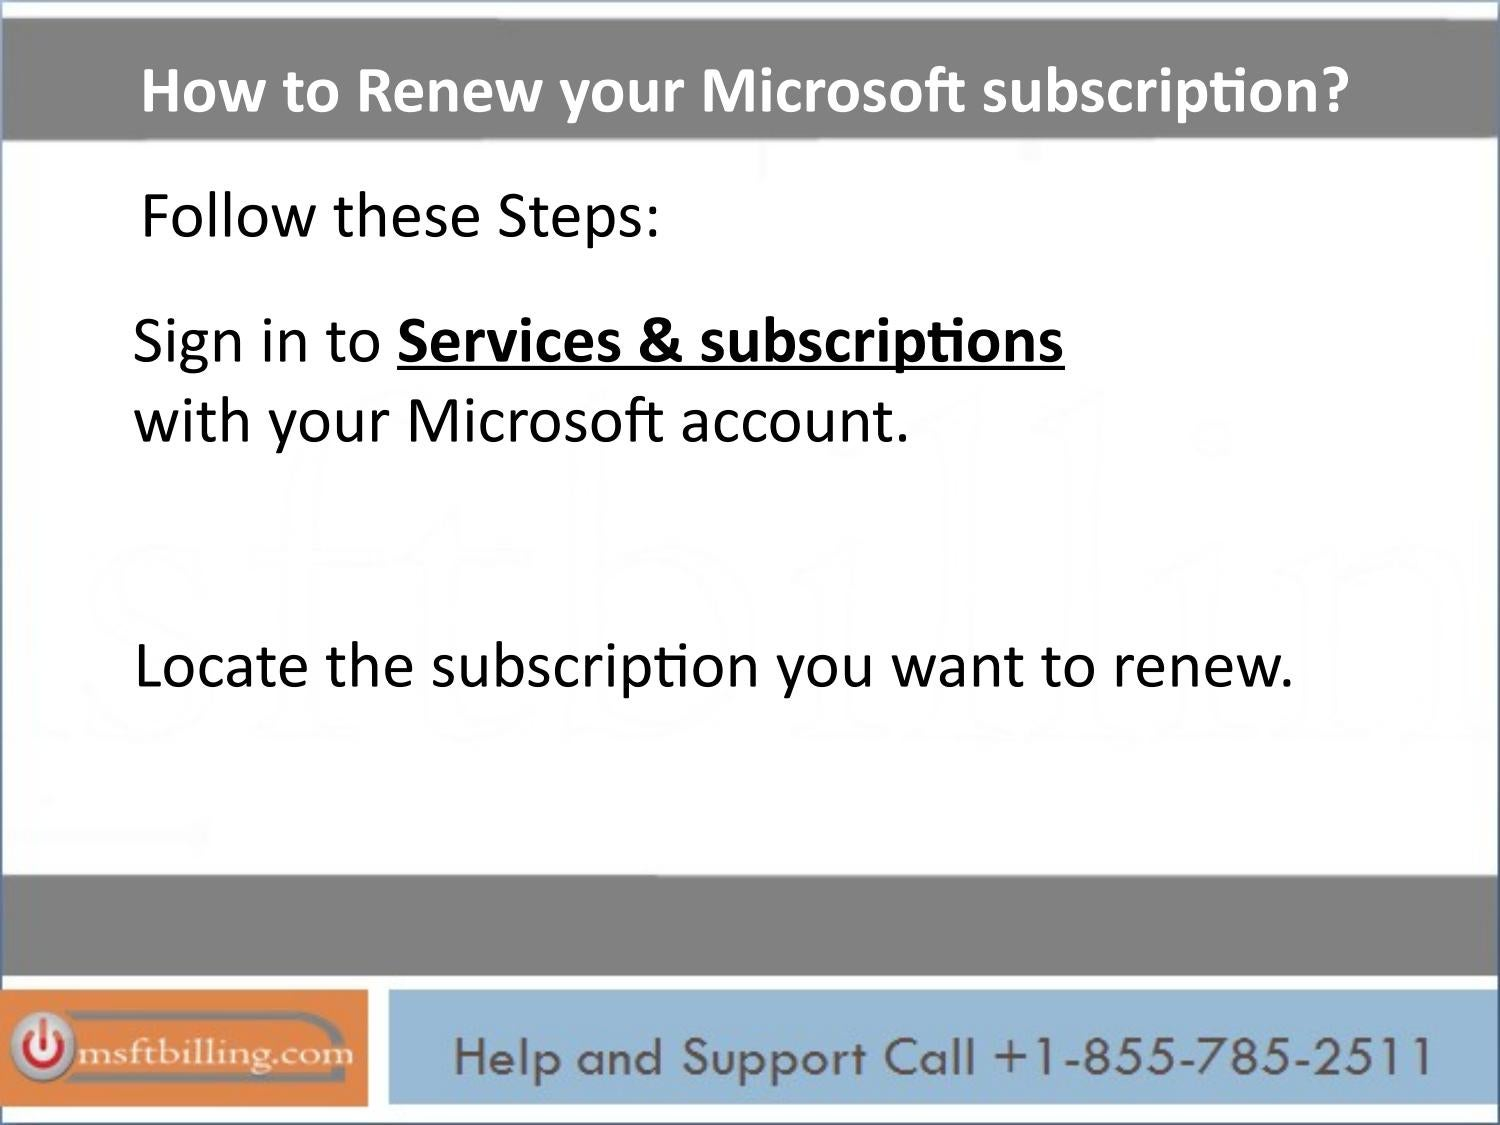 Msn subscription support, call 1 855 785 2511 by David James - issuu